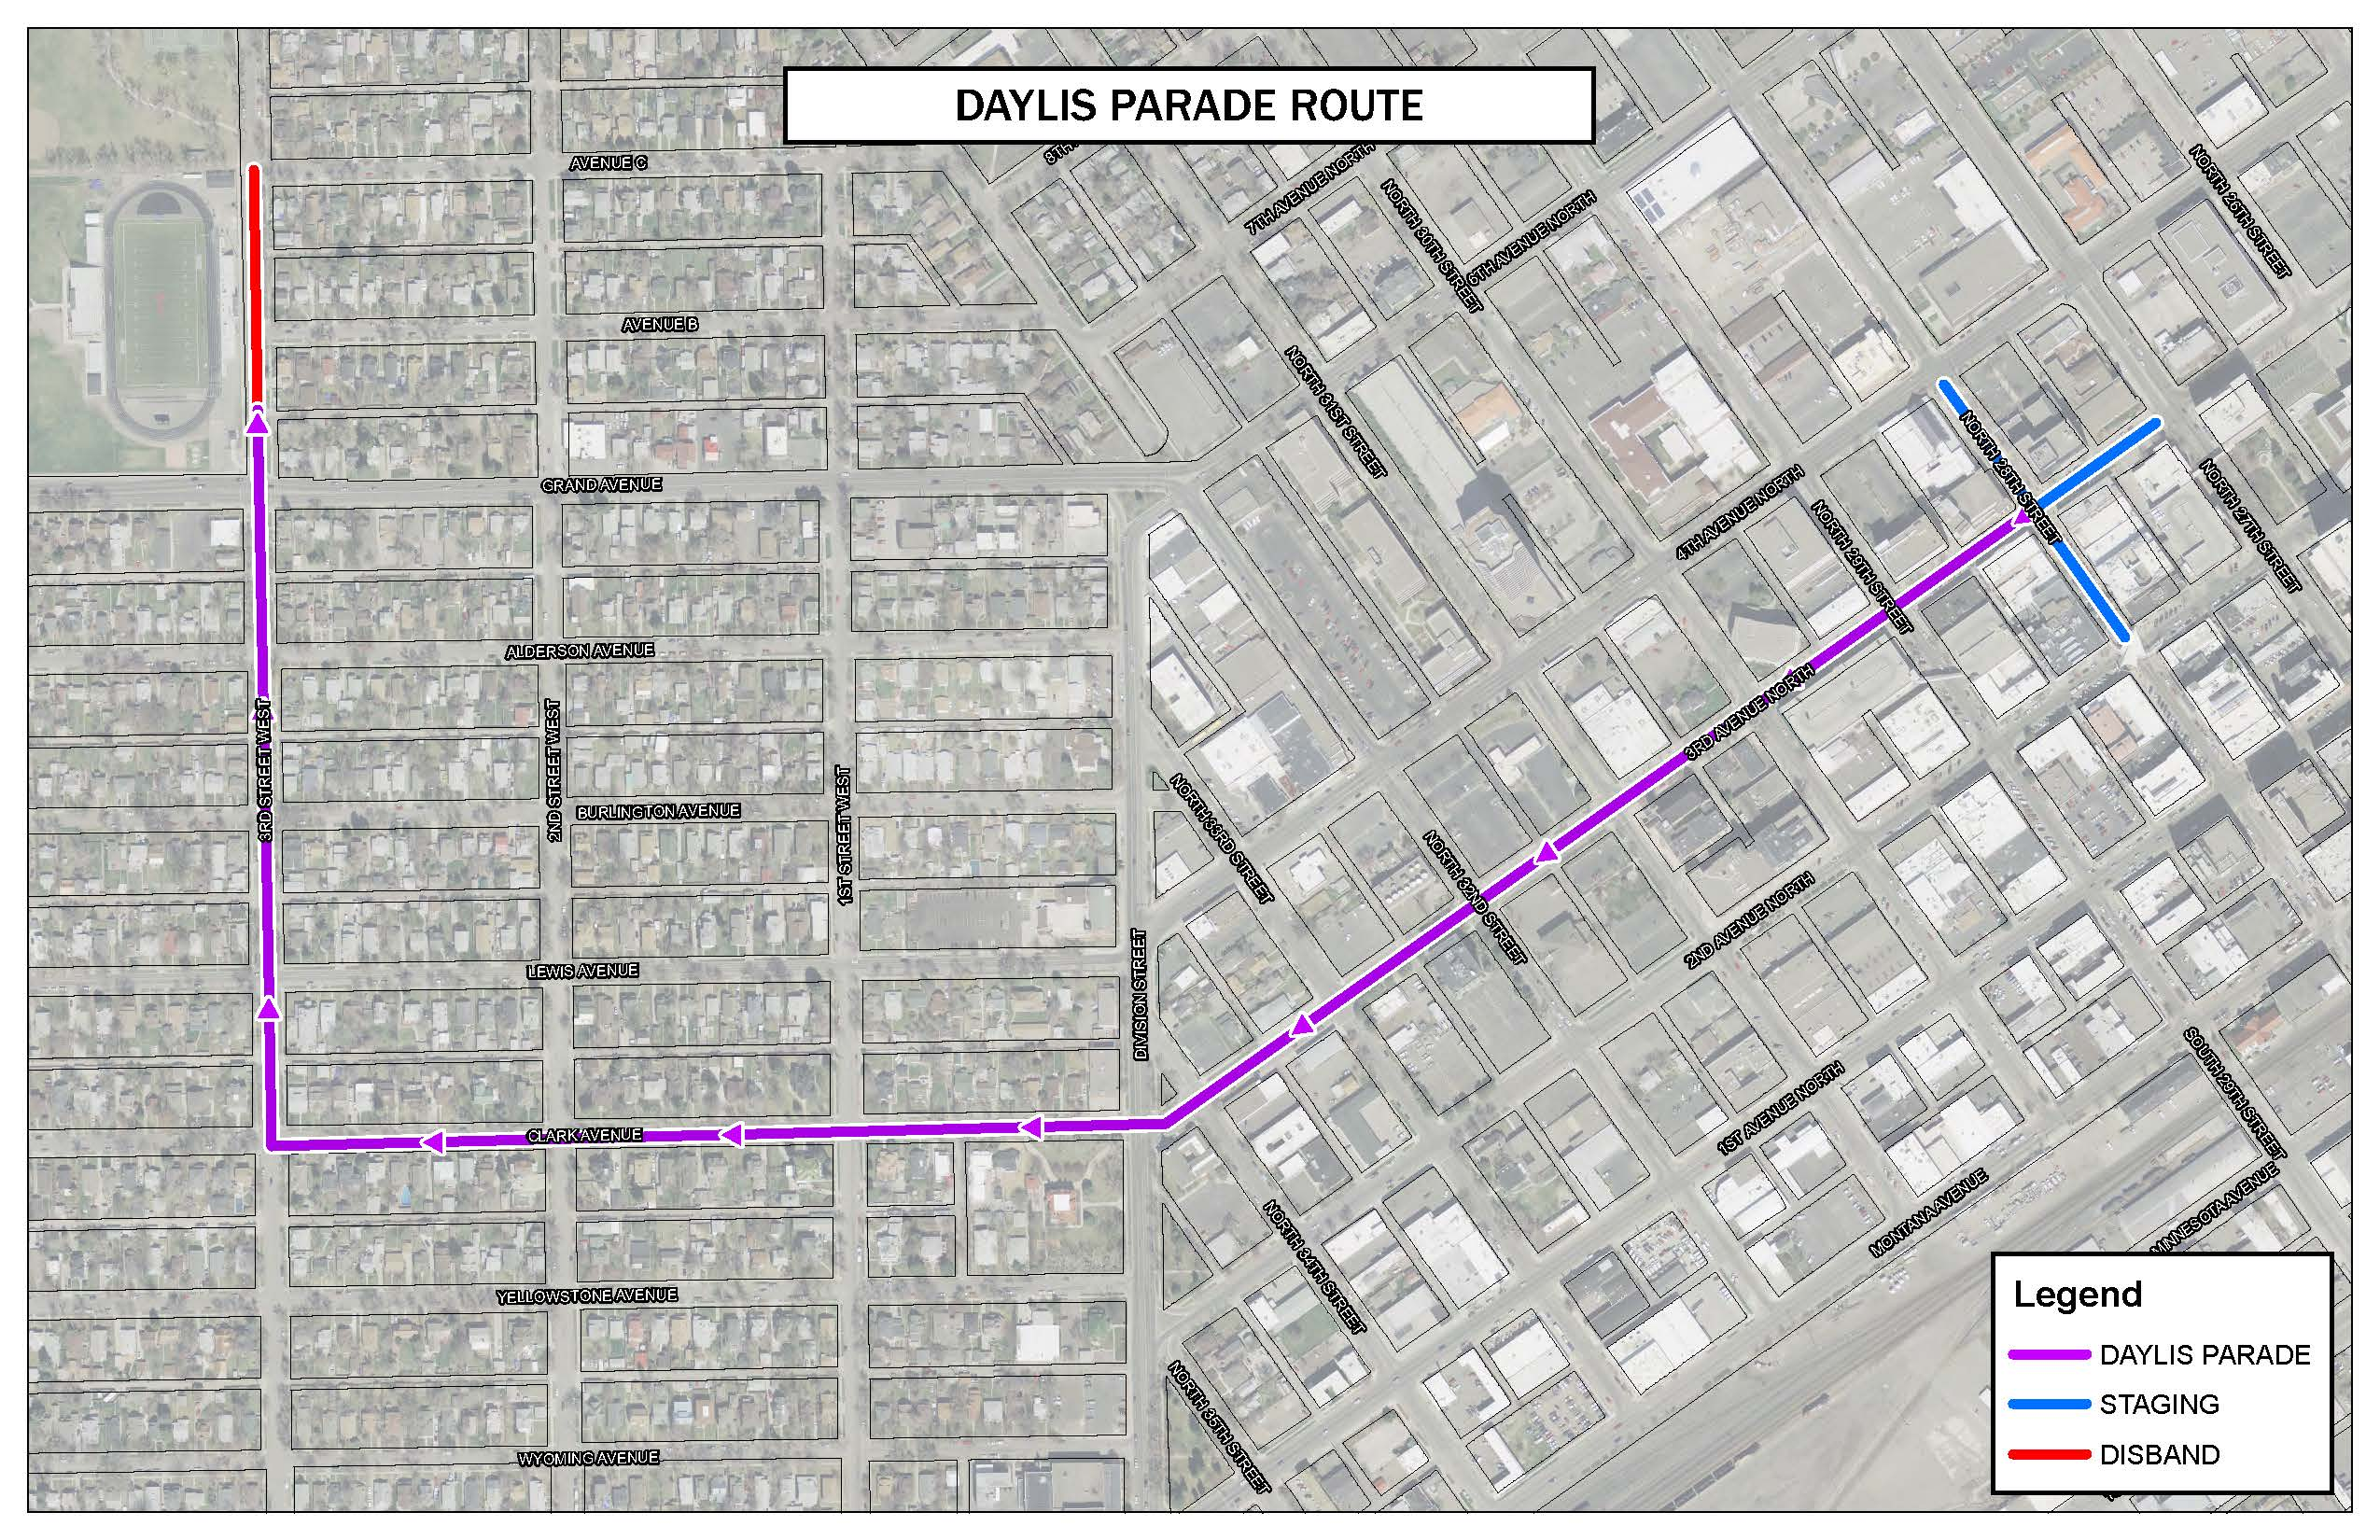 Daylis PARADE ROUTE